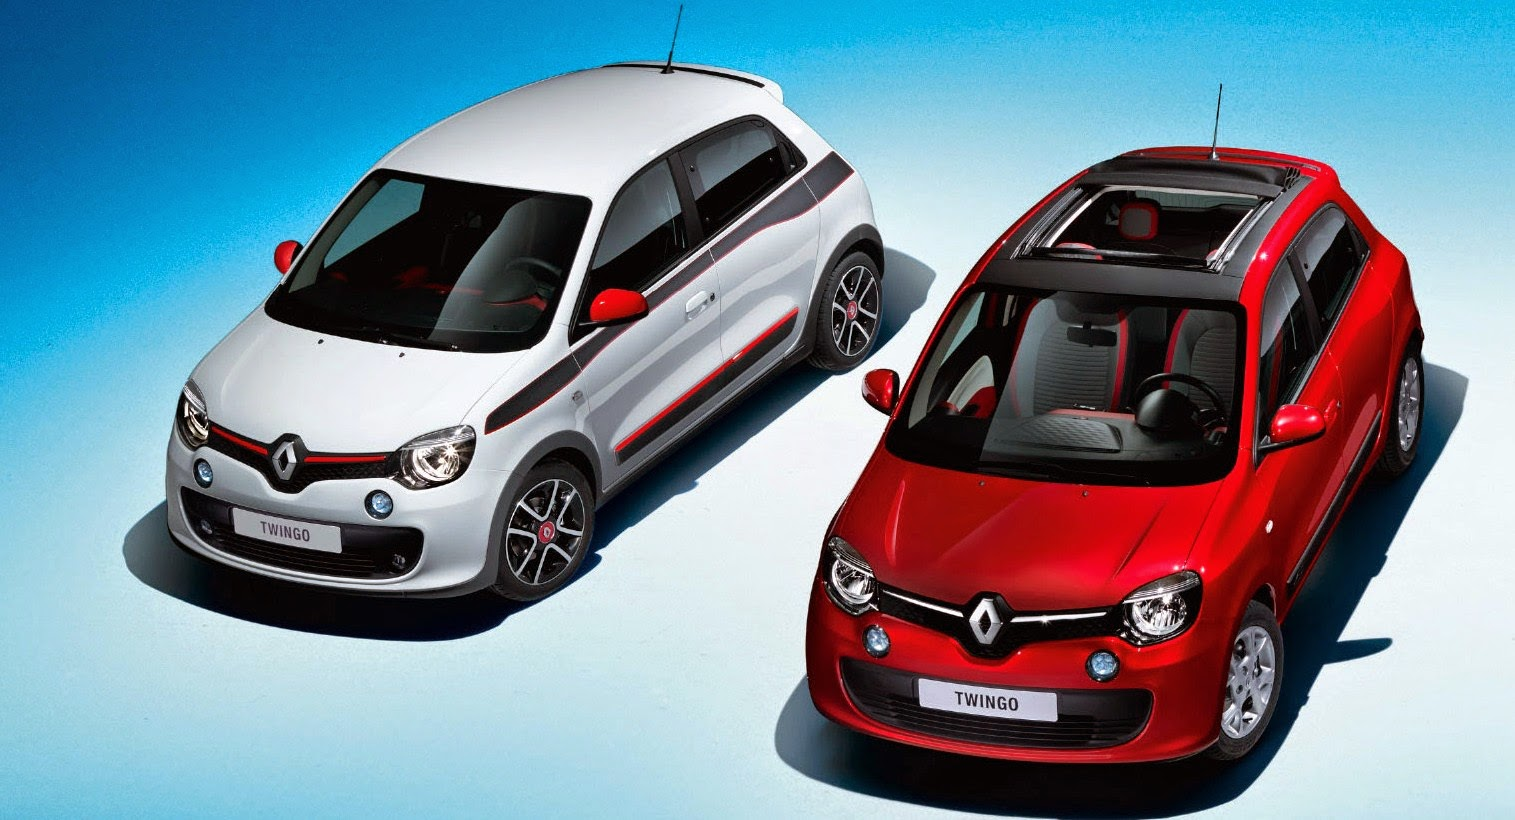 la nouvelle renault twingo 3 enfin les 5 portes one auto. Black Bedroom Furniture Sets. Home Design Ideas